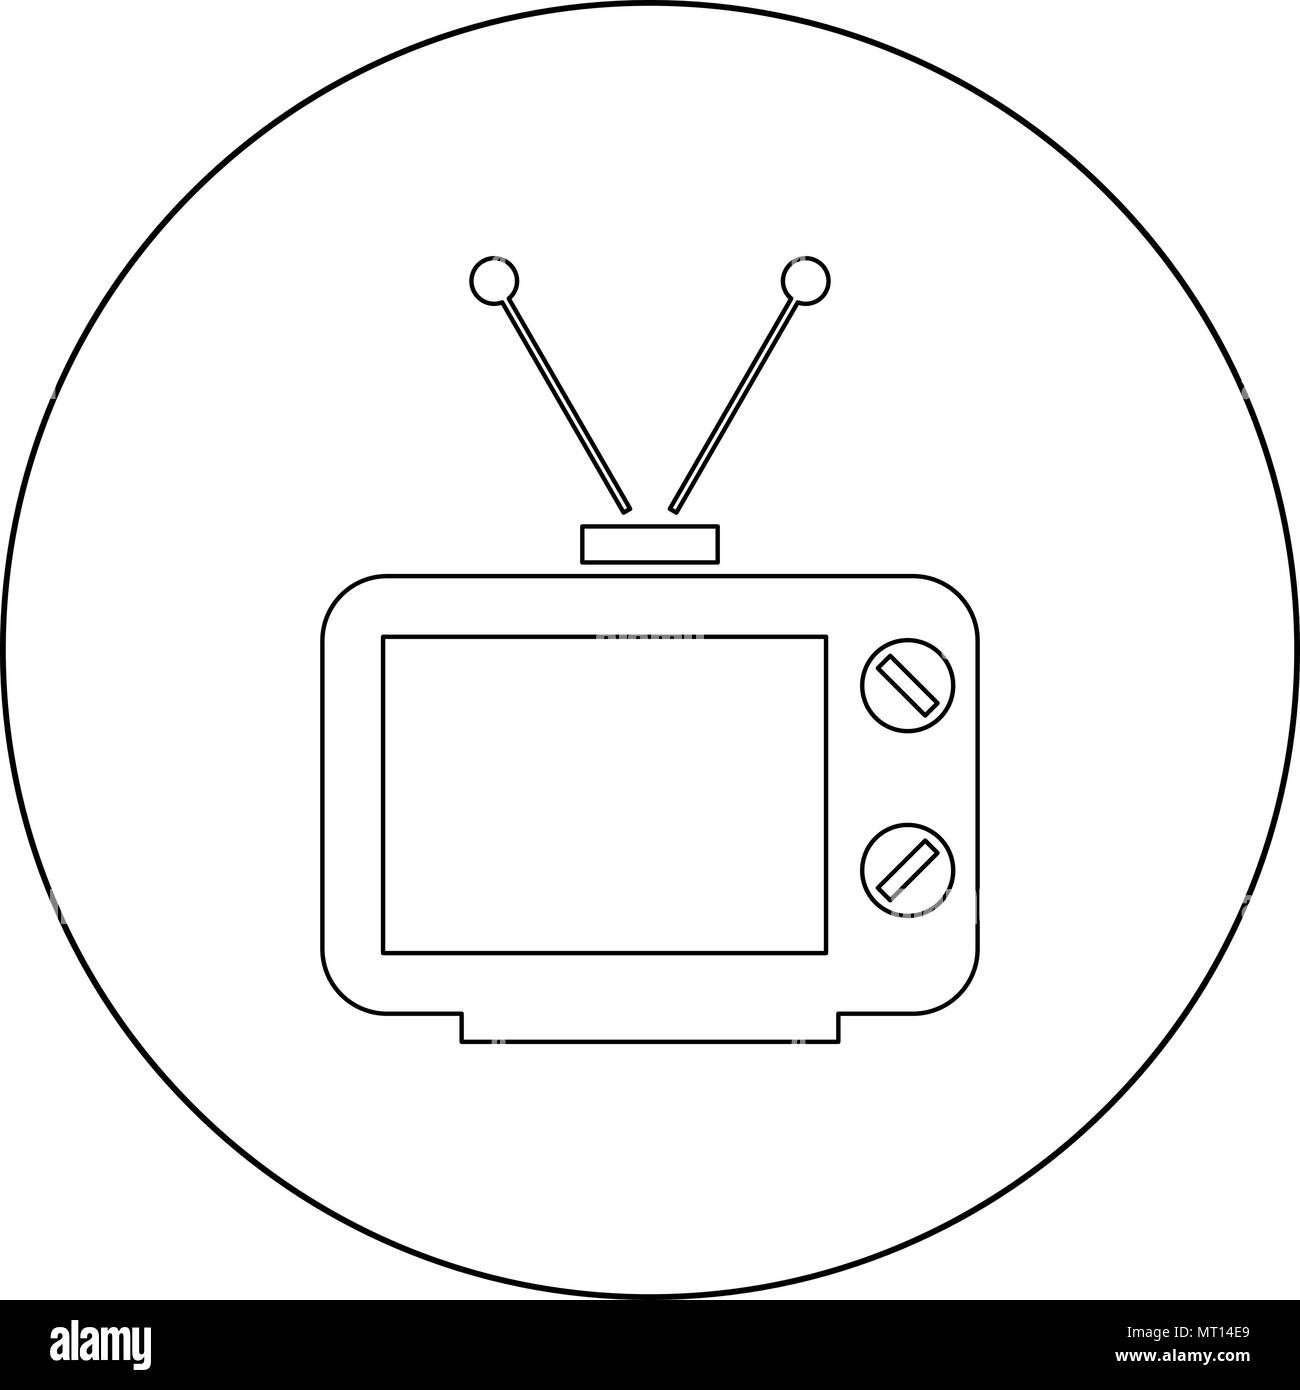 Old TV icon outline black color in circle vector illustration - Stock Image